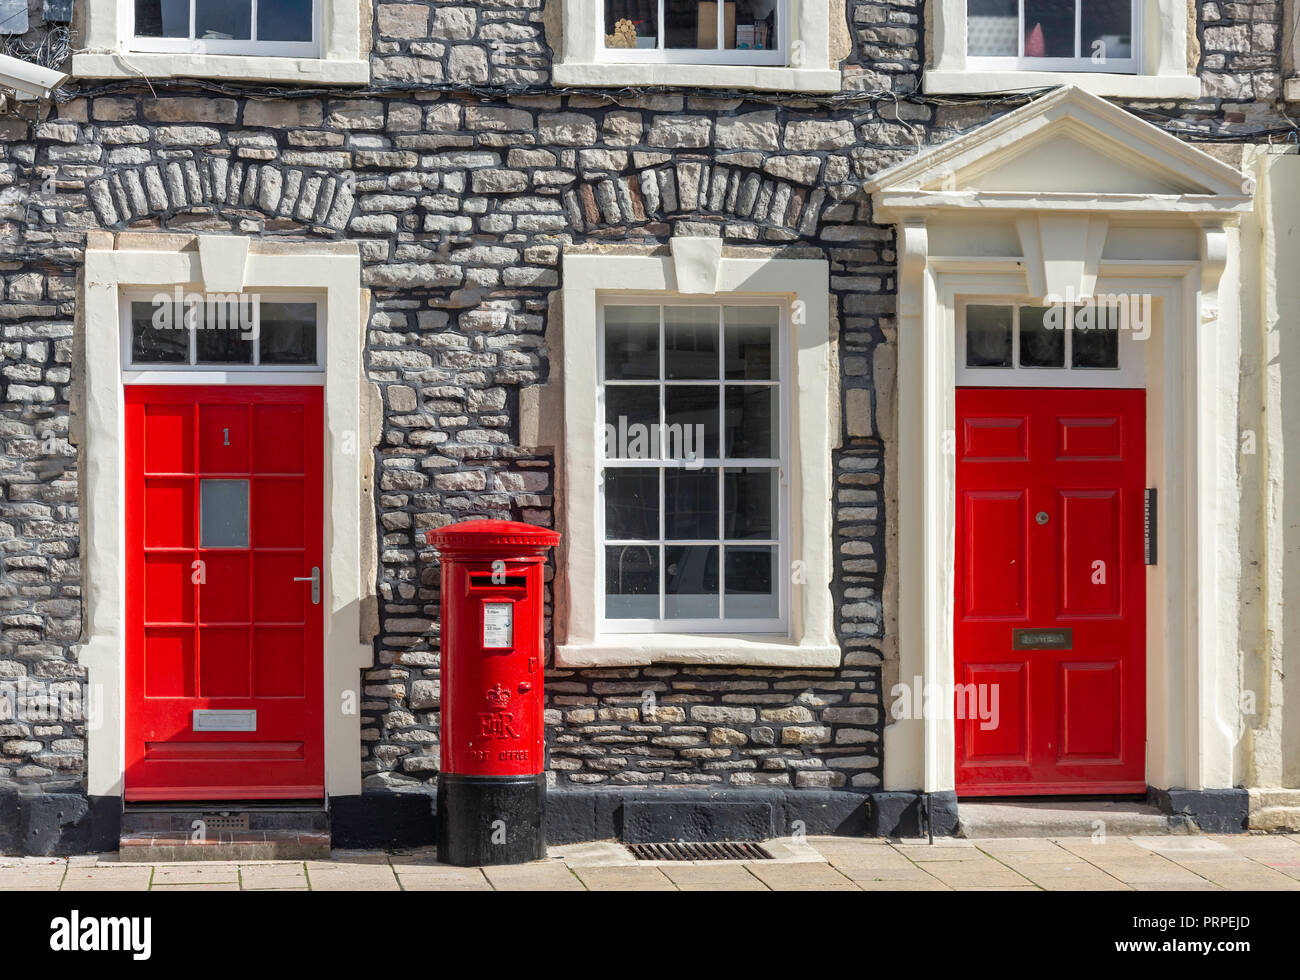 Period houses with red doors and pillar box, Horse Street, Chipping Sodbury, Gloucestershire, England, United Kingdom - Stock Image